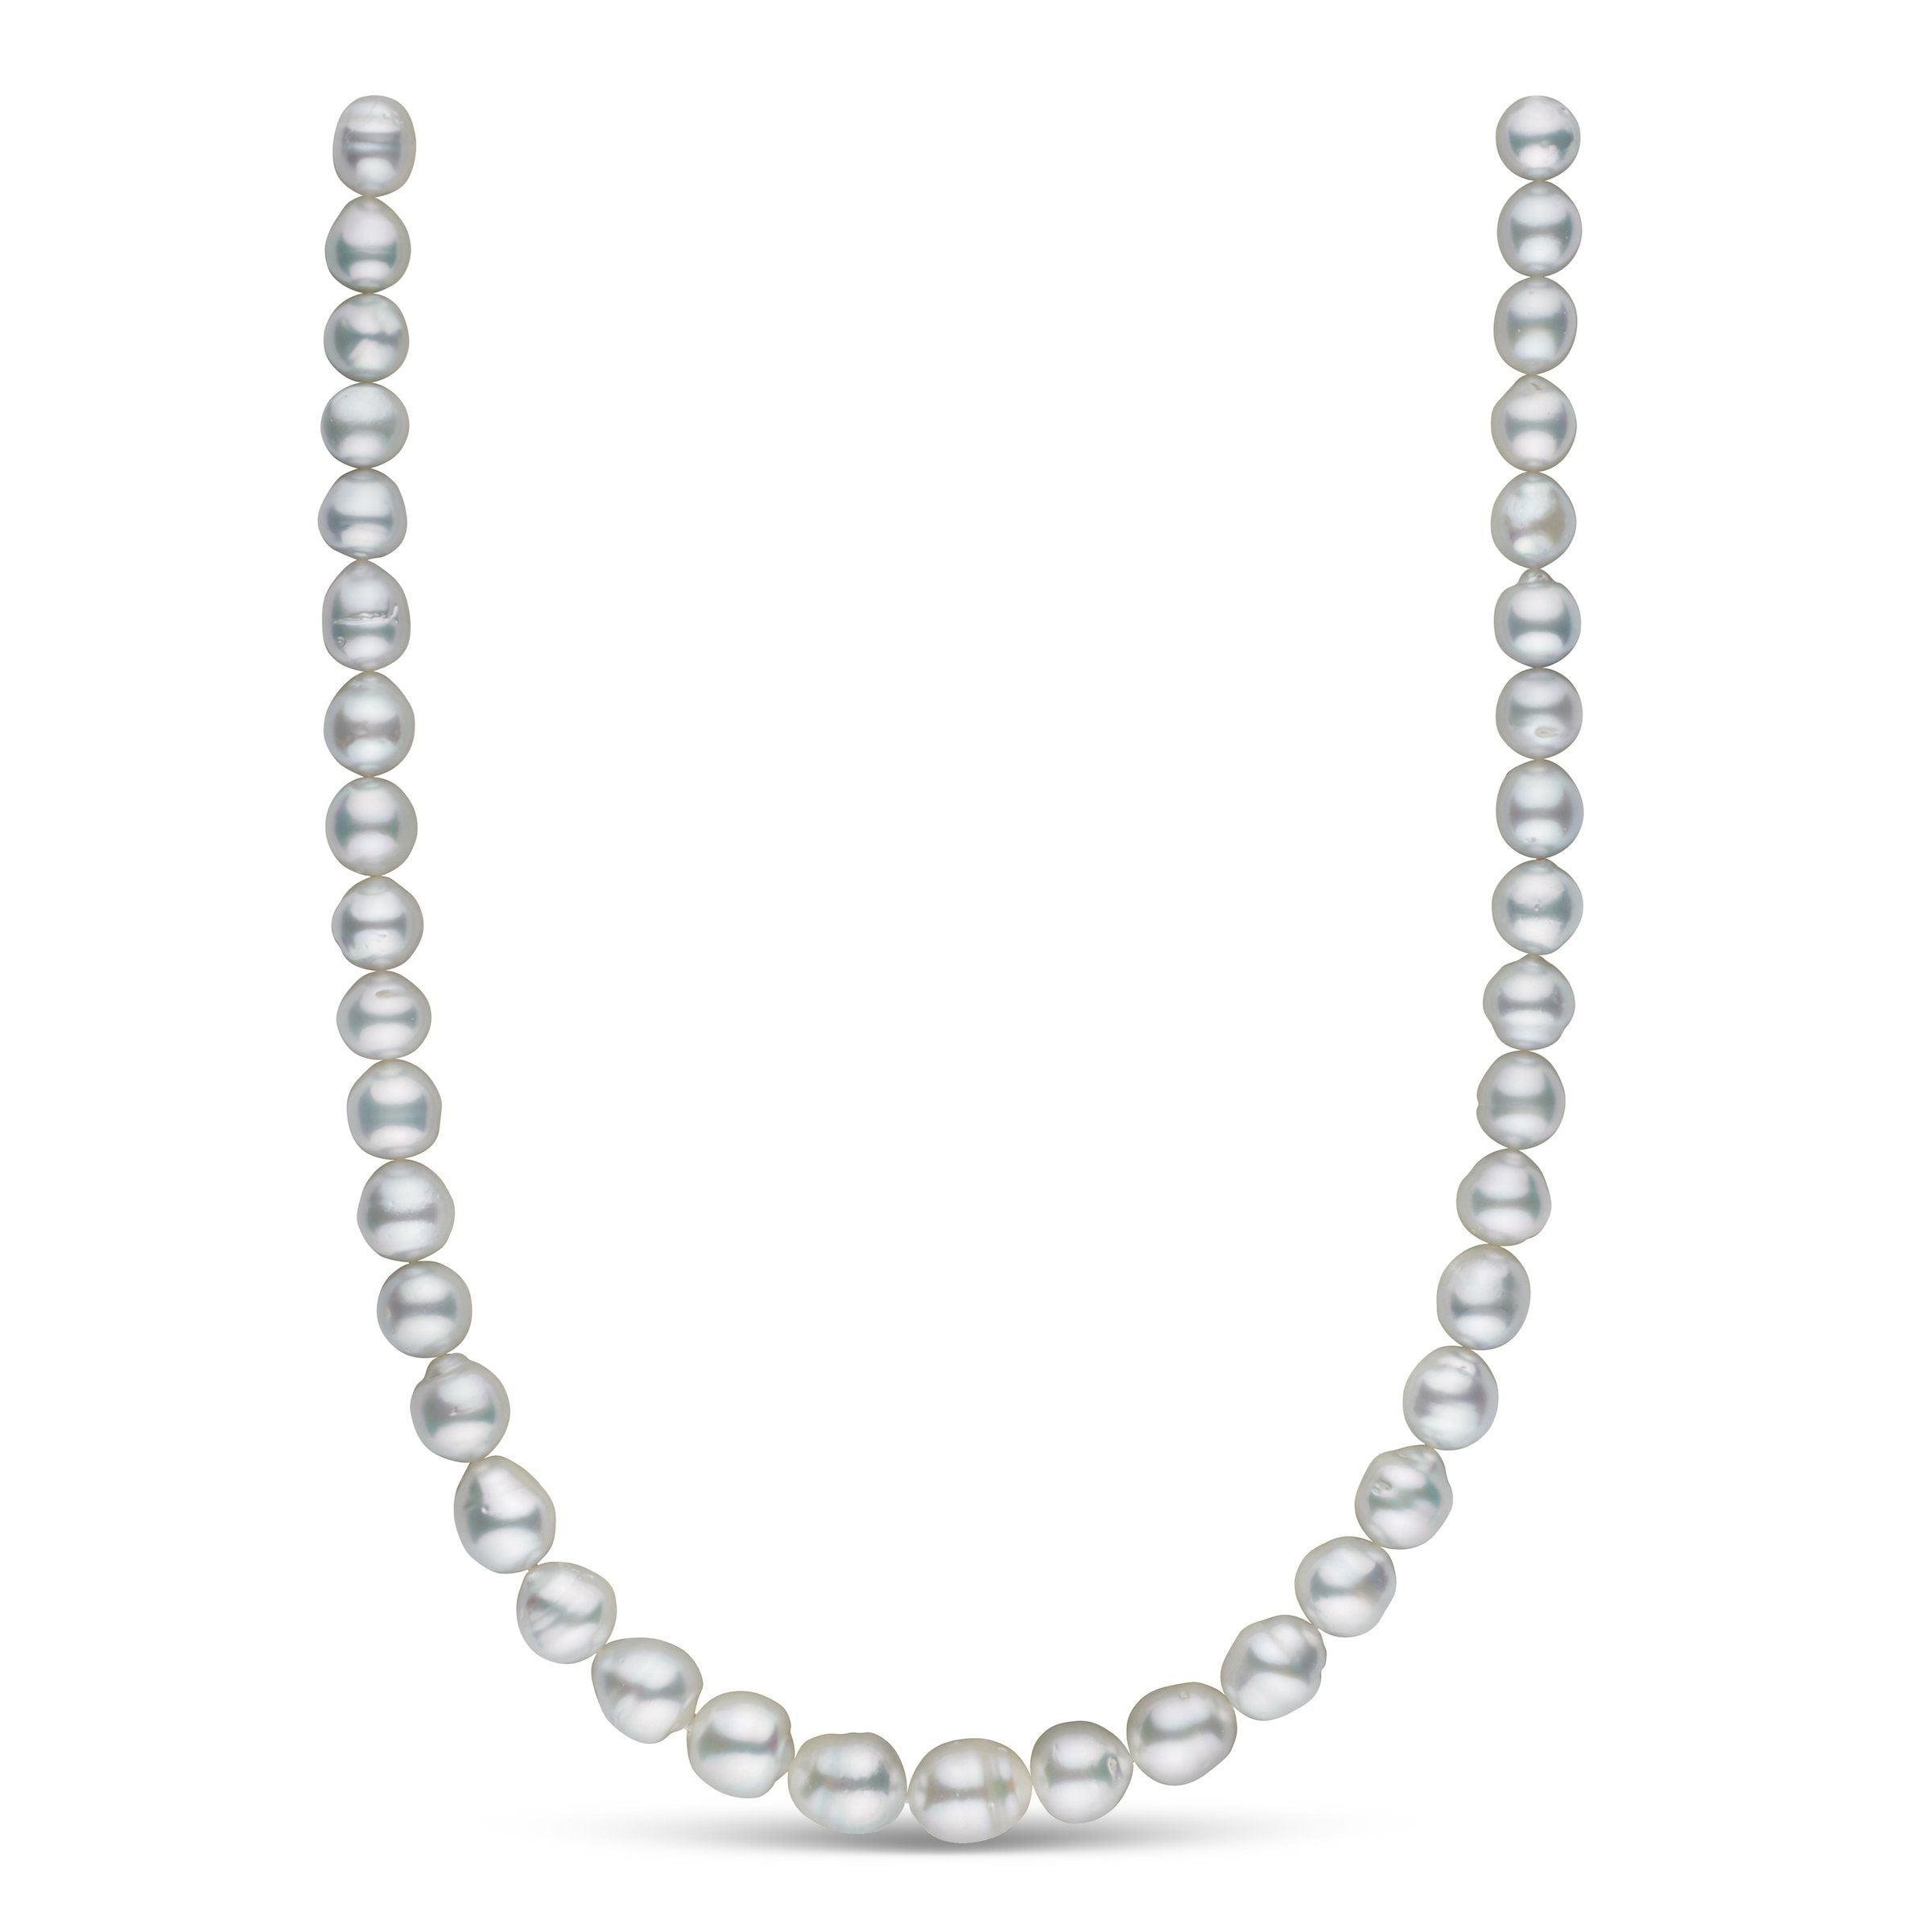 8.8-11.0 mm AA+/AAA White South Sea Baroque Necklace